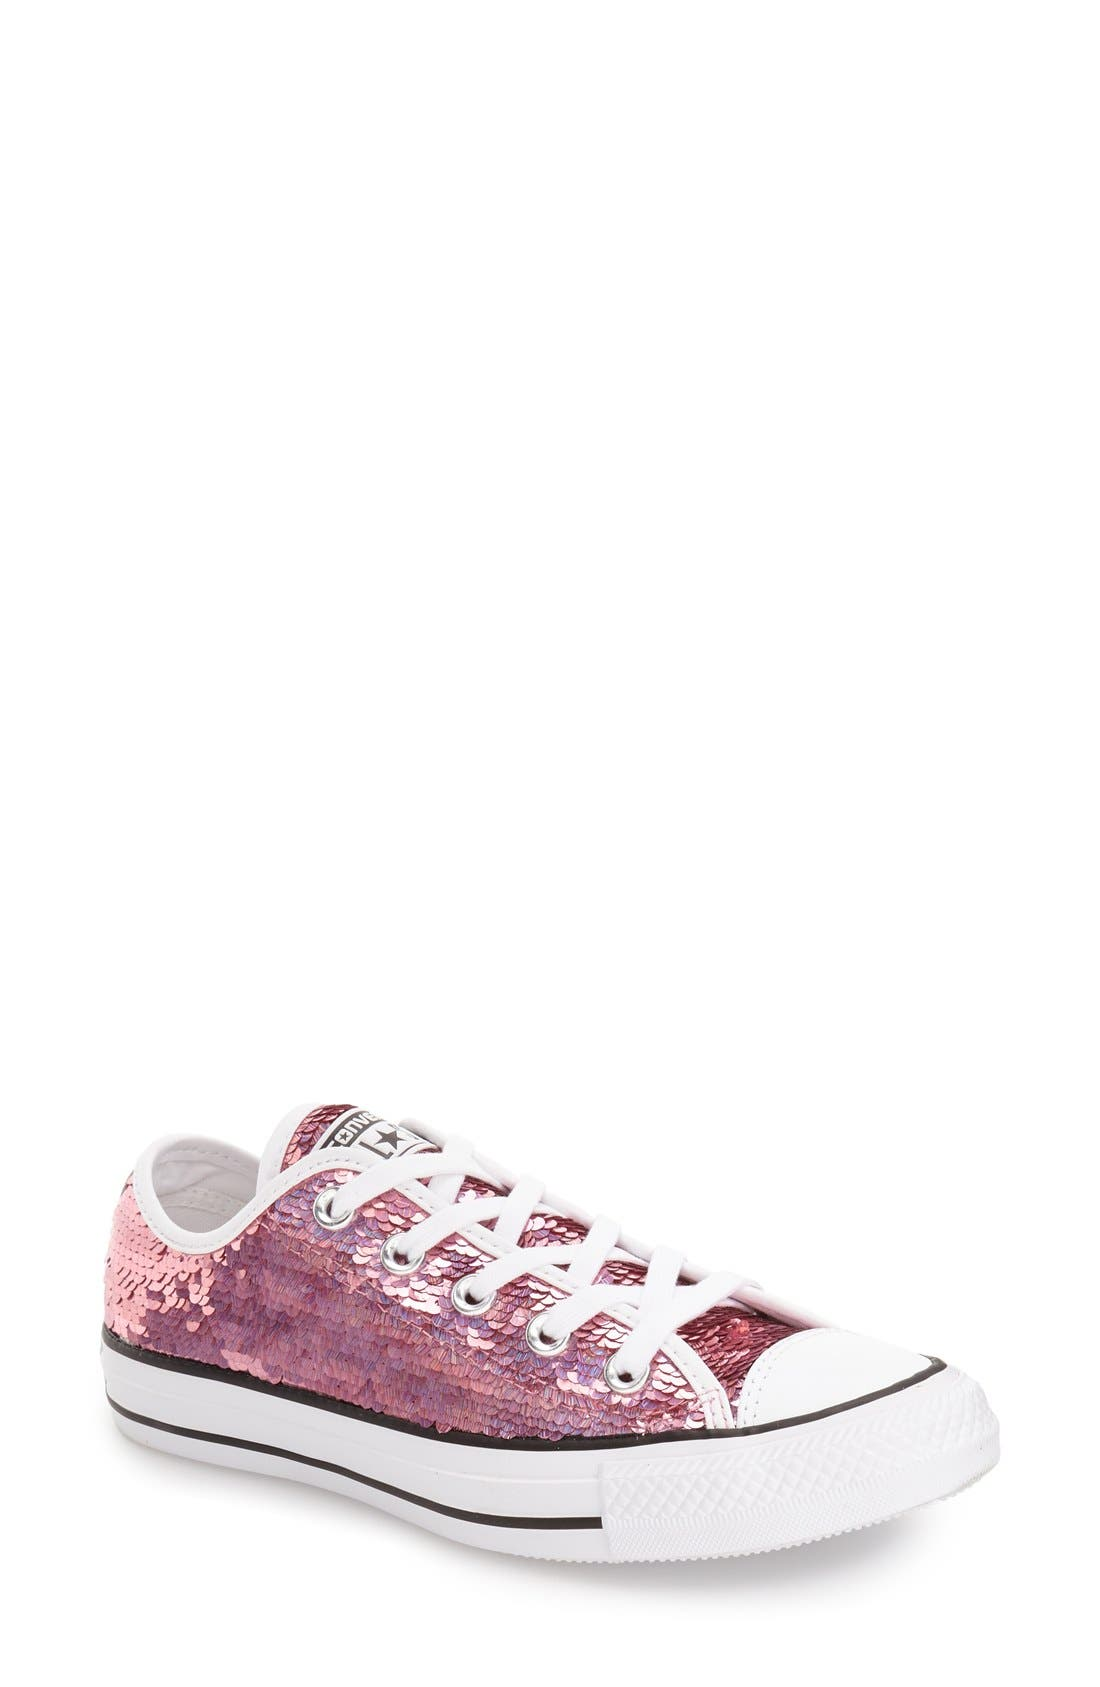 Main Image - Converse Chuck Taylor® All Star® 'Holiday Party' Low Top Sequined Sneaker (Women)